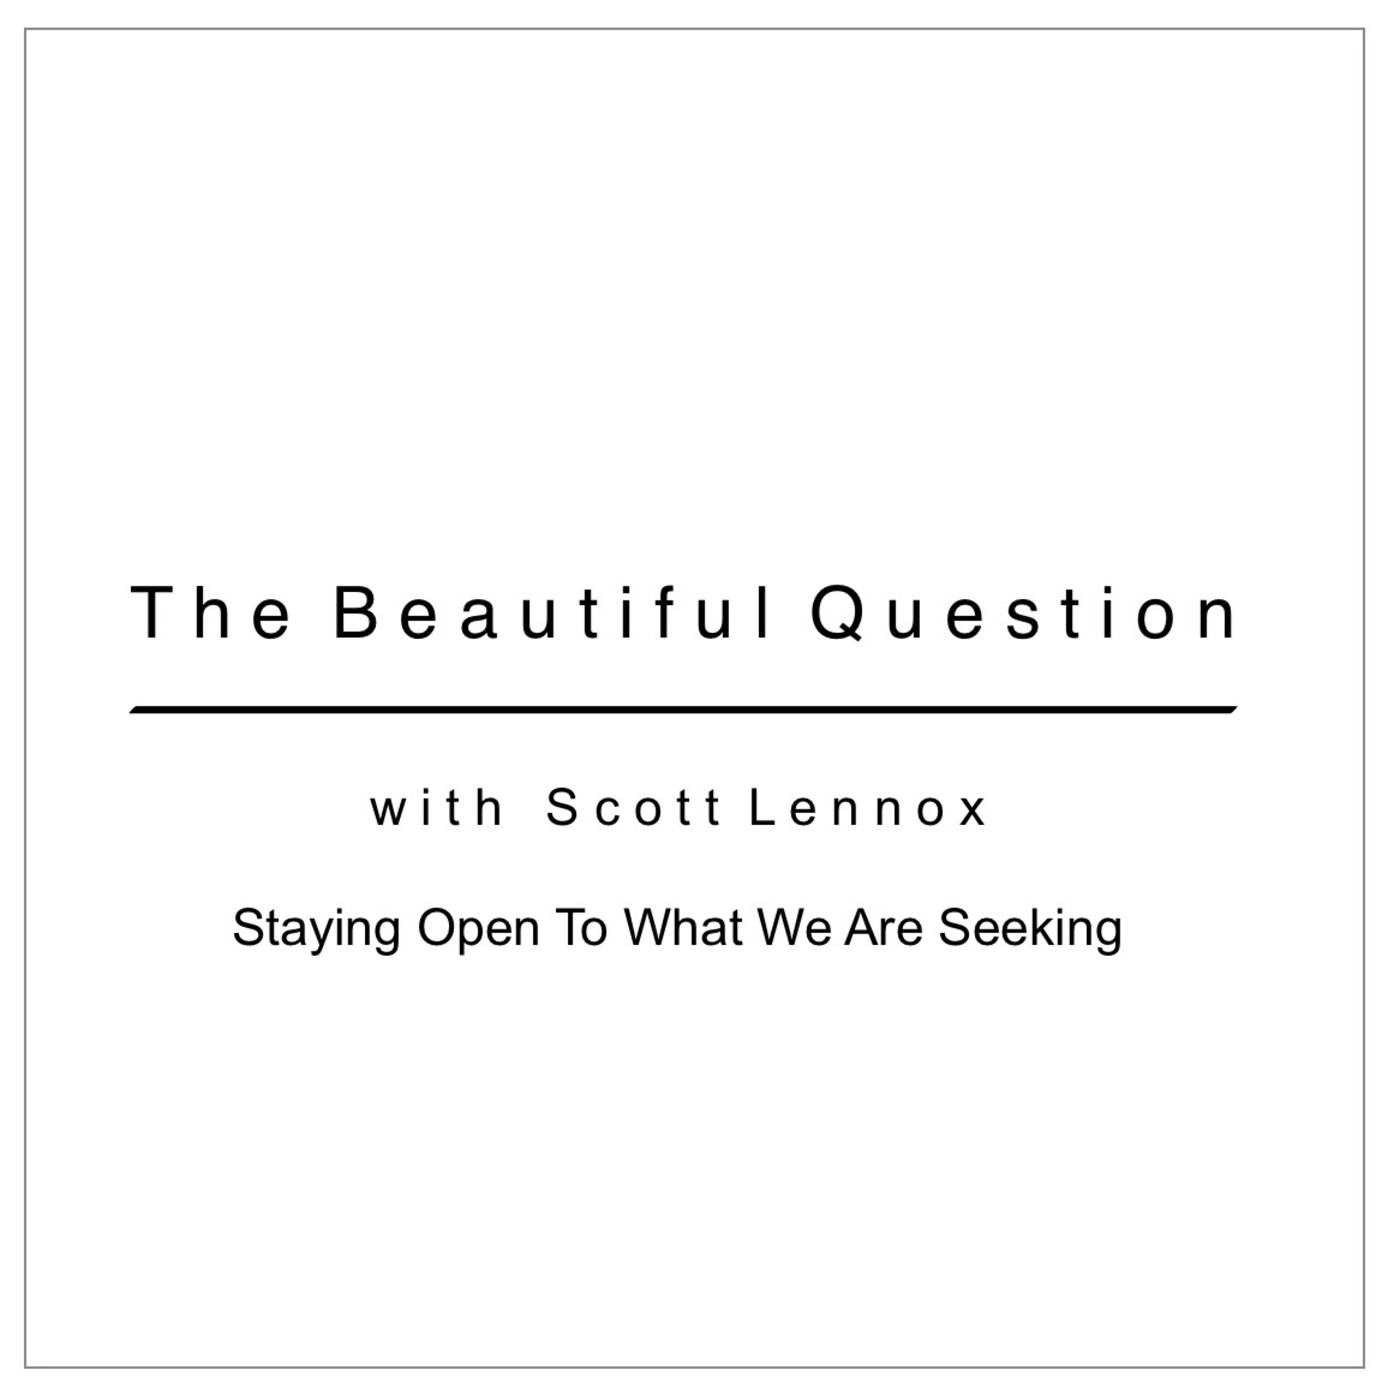 Staying Open To What We Are Seeking